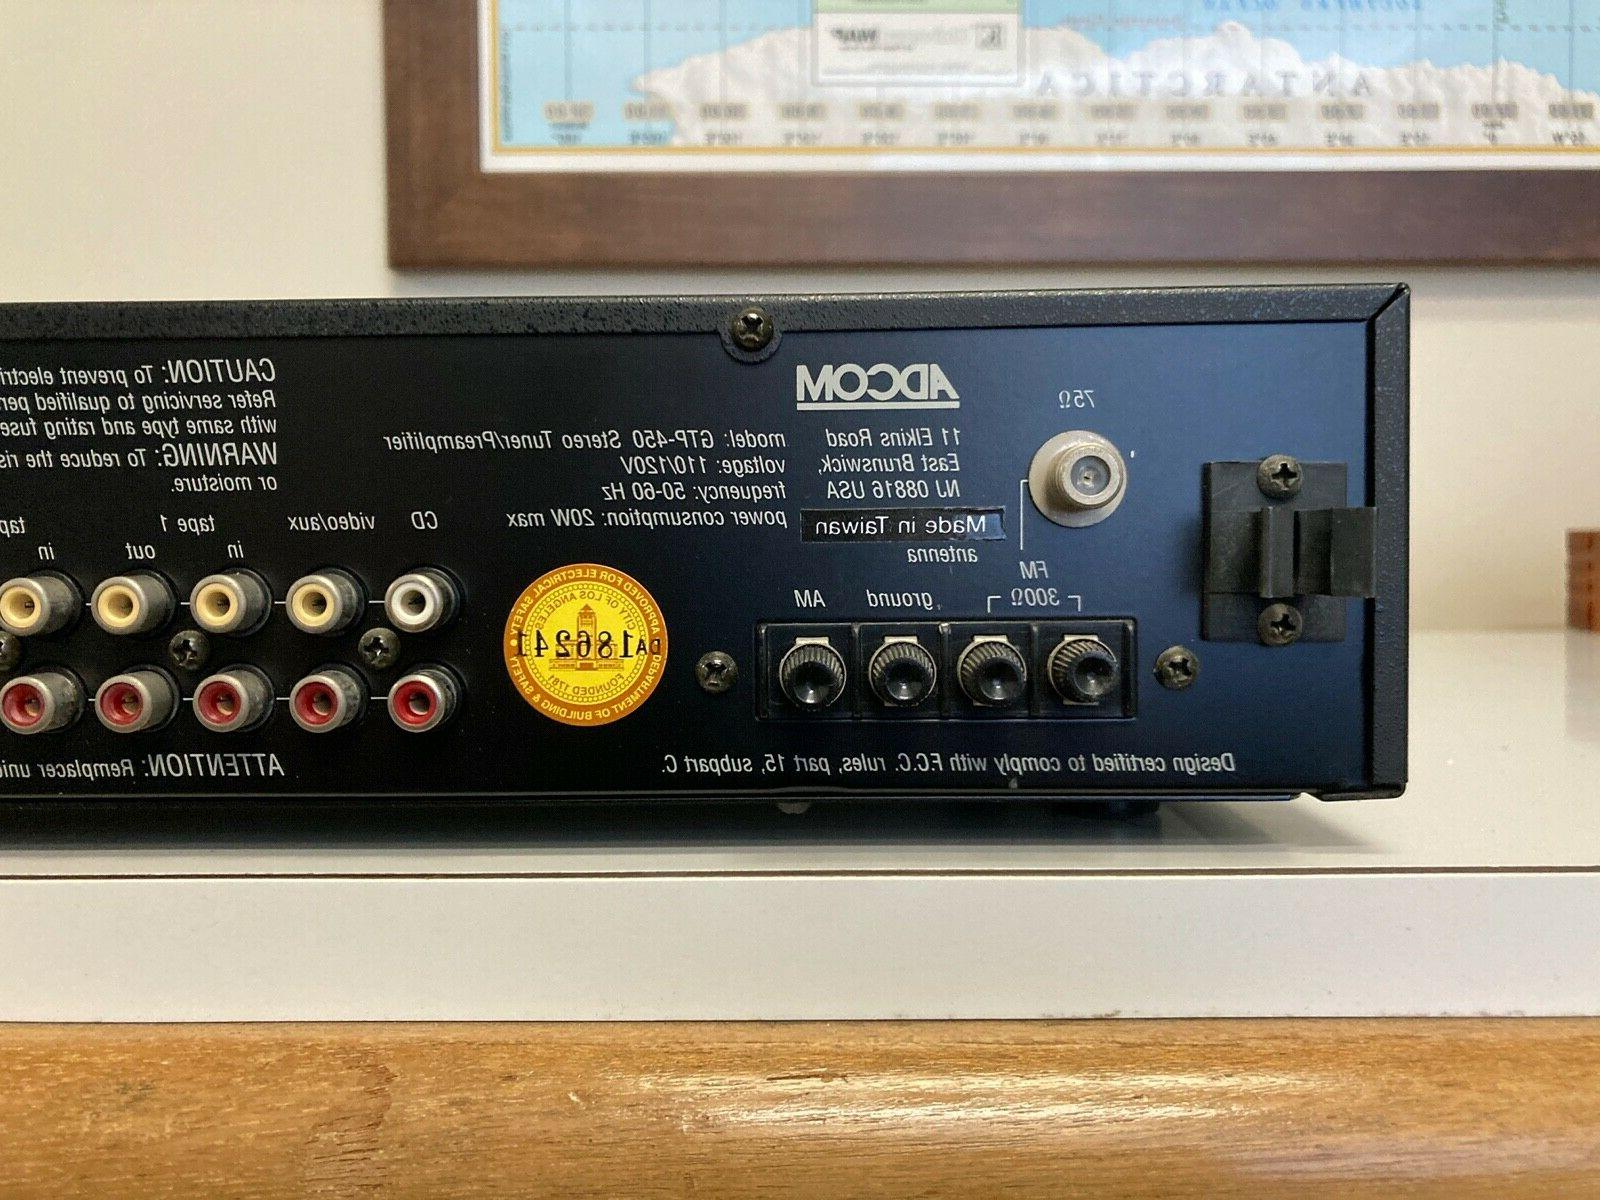 Adcom GTP-450 tuner in condition with remote